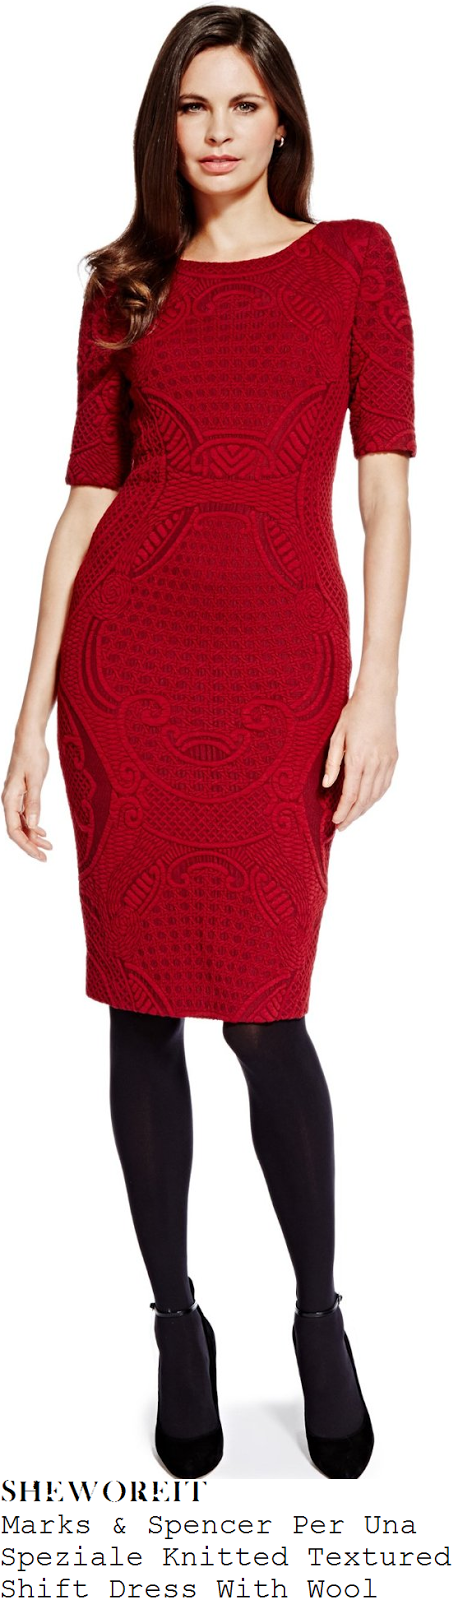 holly-willoughby-red-textured-knit-dress-this-morning